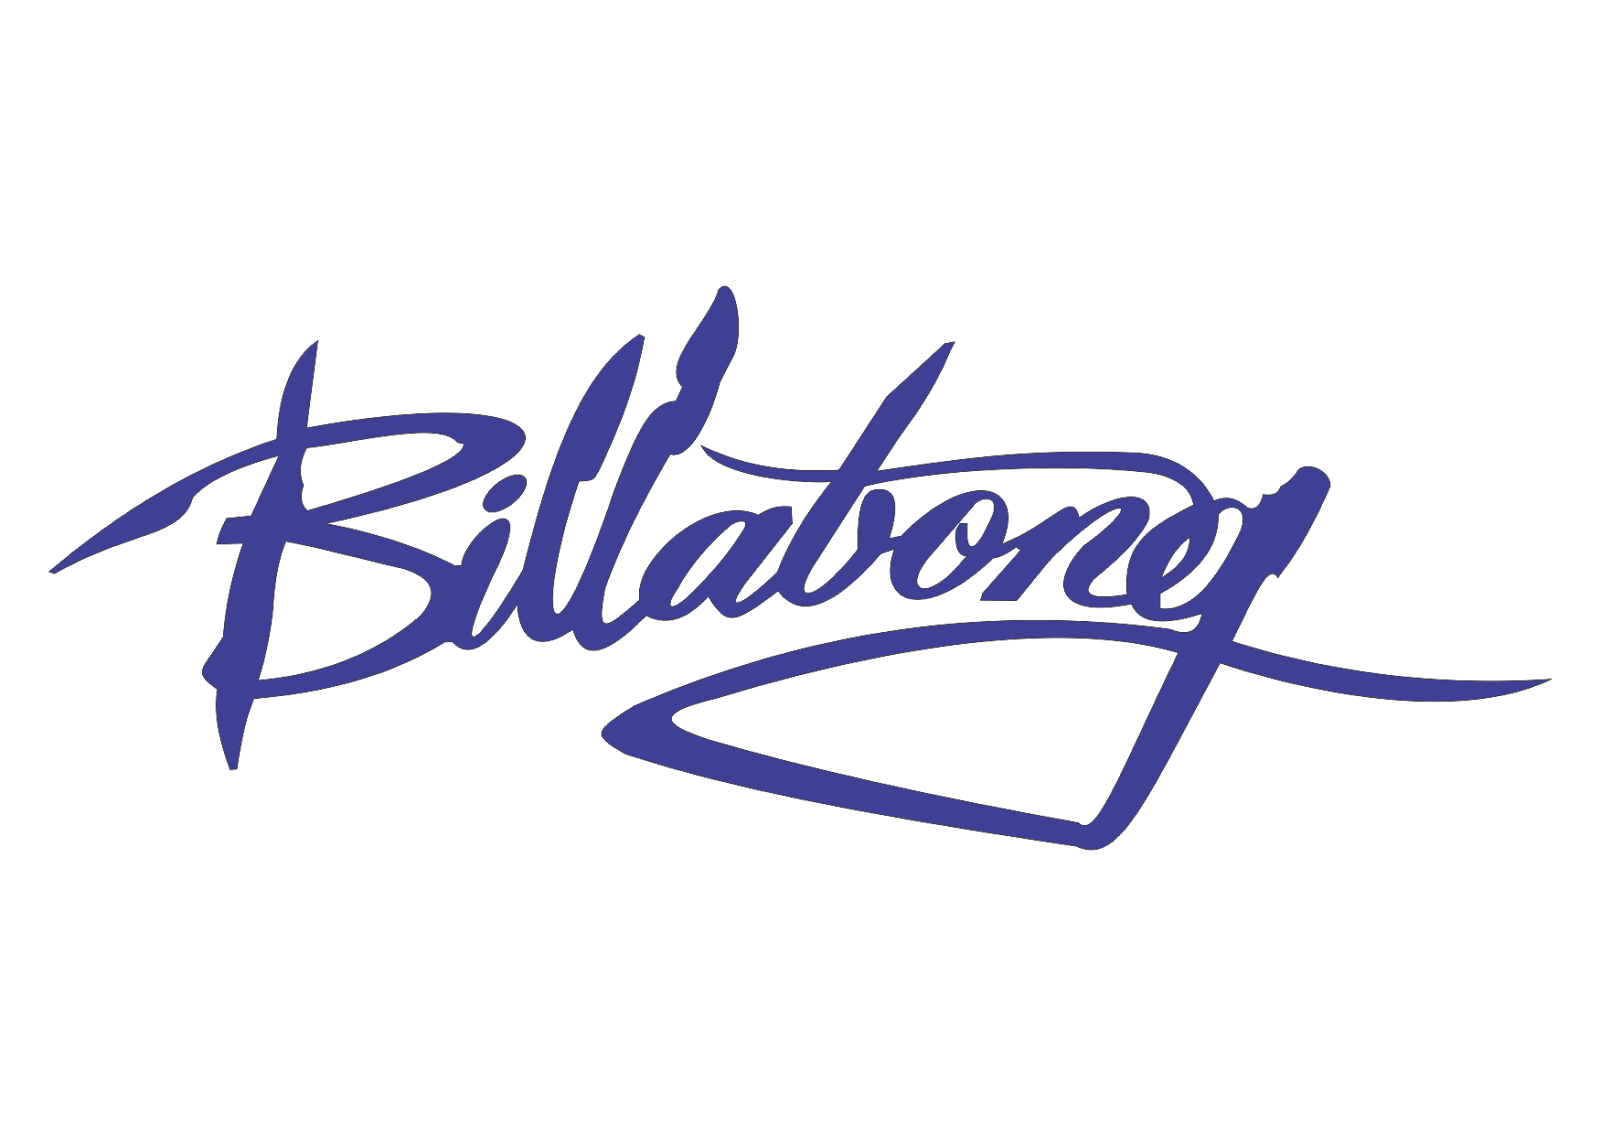 Billabong svg #16, Download drawings